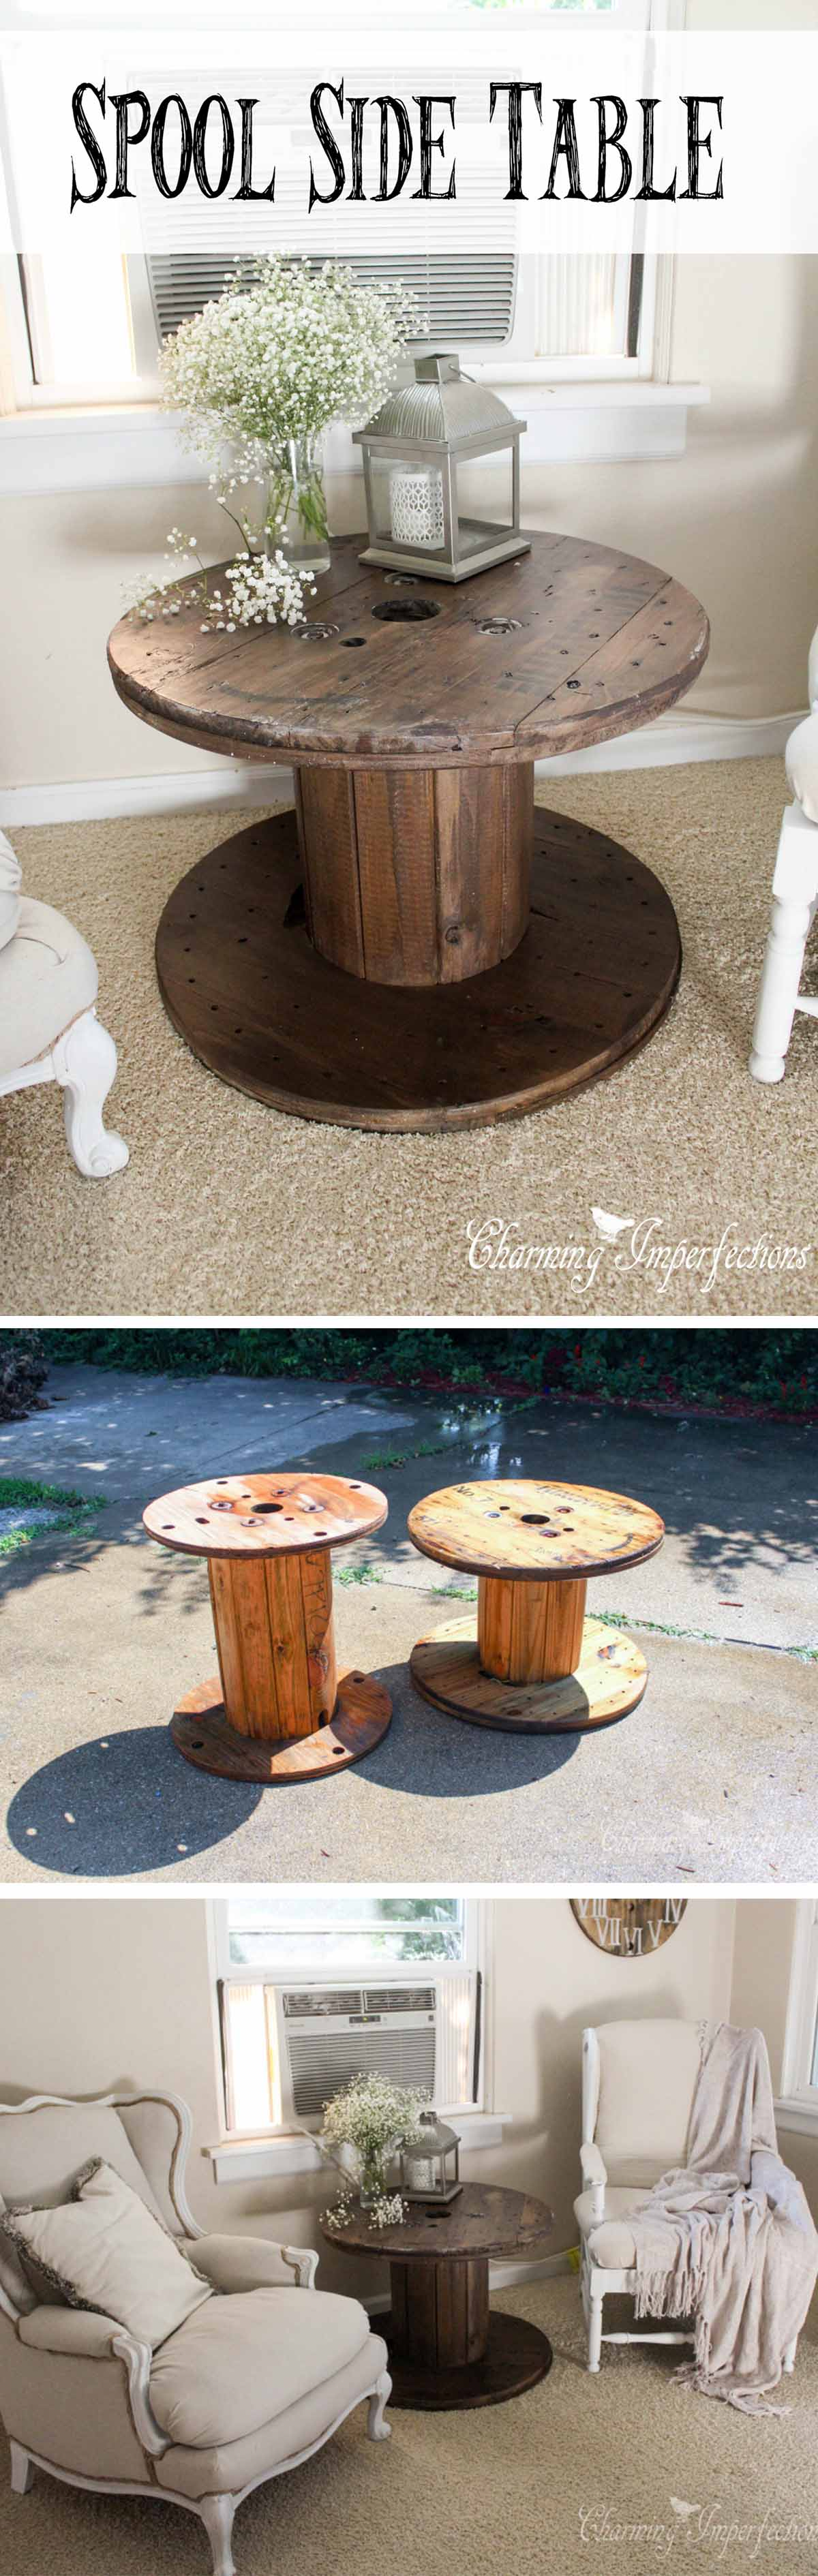 best diy farmhouse coffee table ideas and designs for homebnc white accent easy industrial wooden spool bar height pub set acrylic log end metal folding chairs target natural